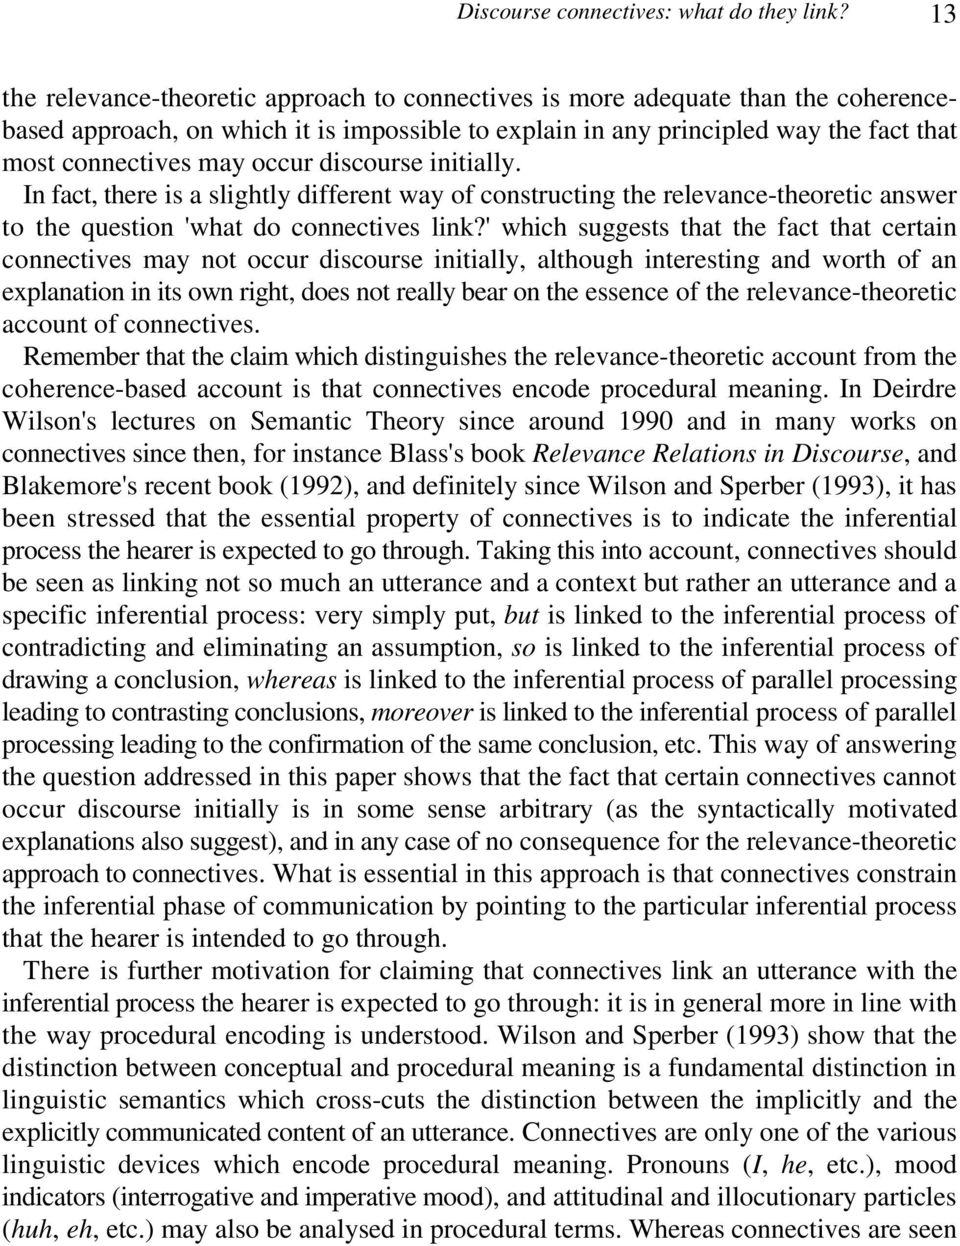 occur discourse initially. In fact, there is a slightly different way of constructing the relevance-theoretic answer to the question 'what do connectives link?